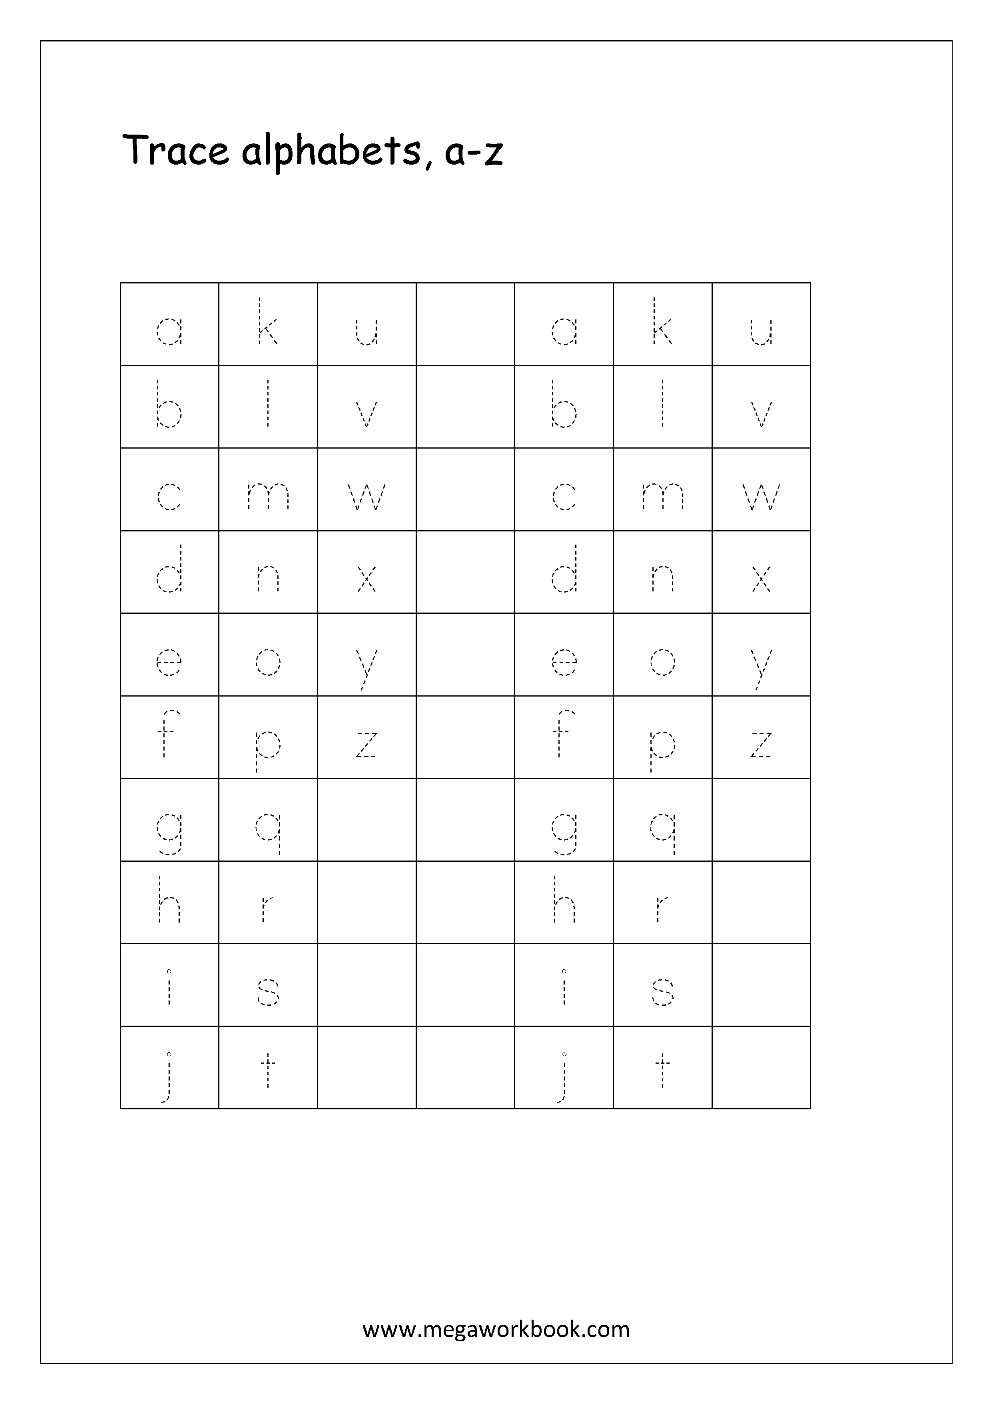 Free English Worksheets  Alphabet Tracing Small Letters  Letter Intended For Alphabet Tracing Worksheets For 3 Year Olds